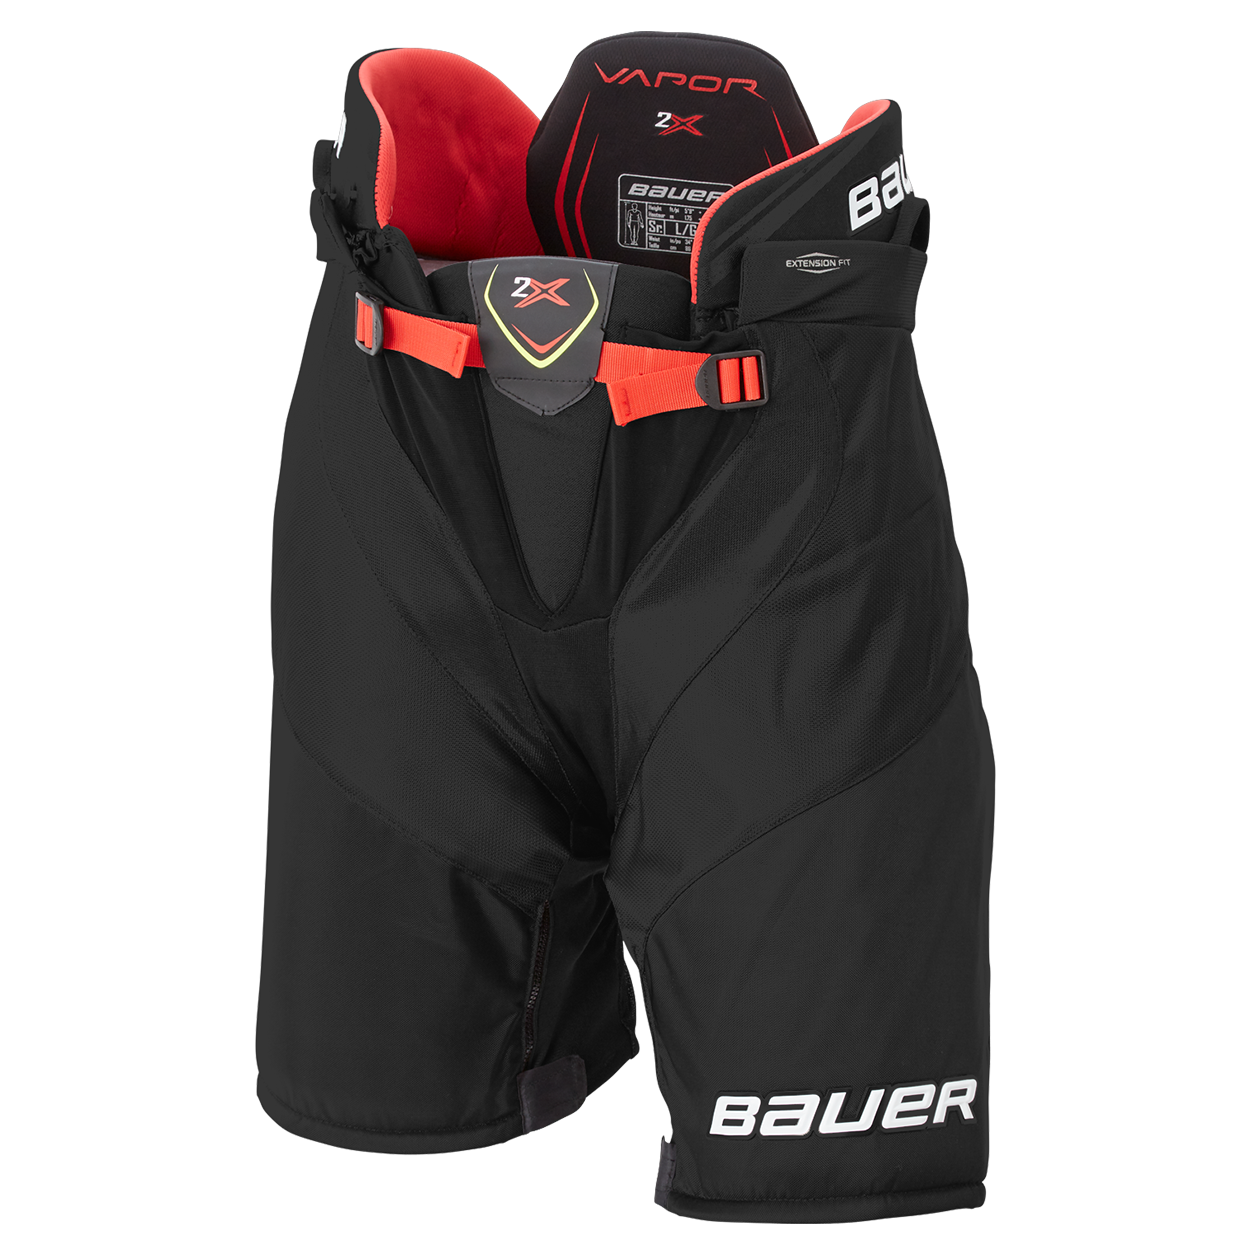 VAPOR 2X Pants Junior,Svart,medium